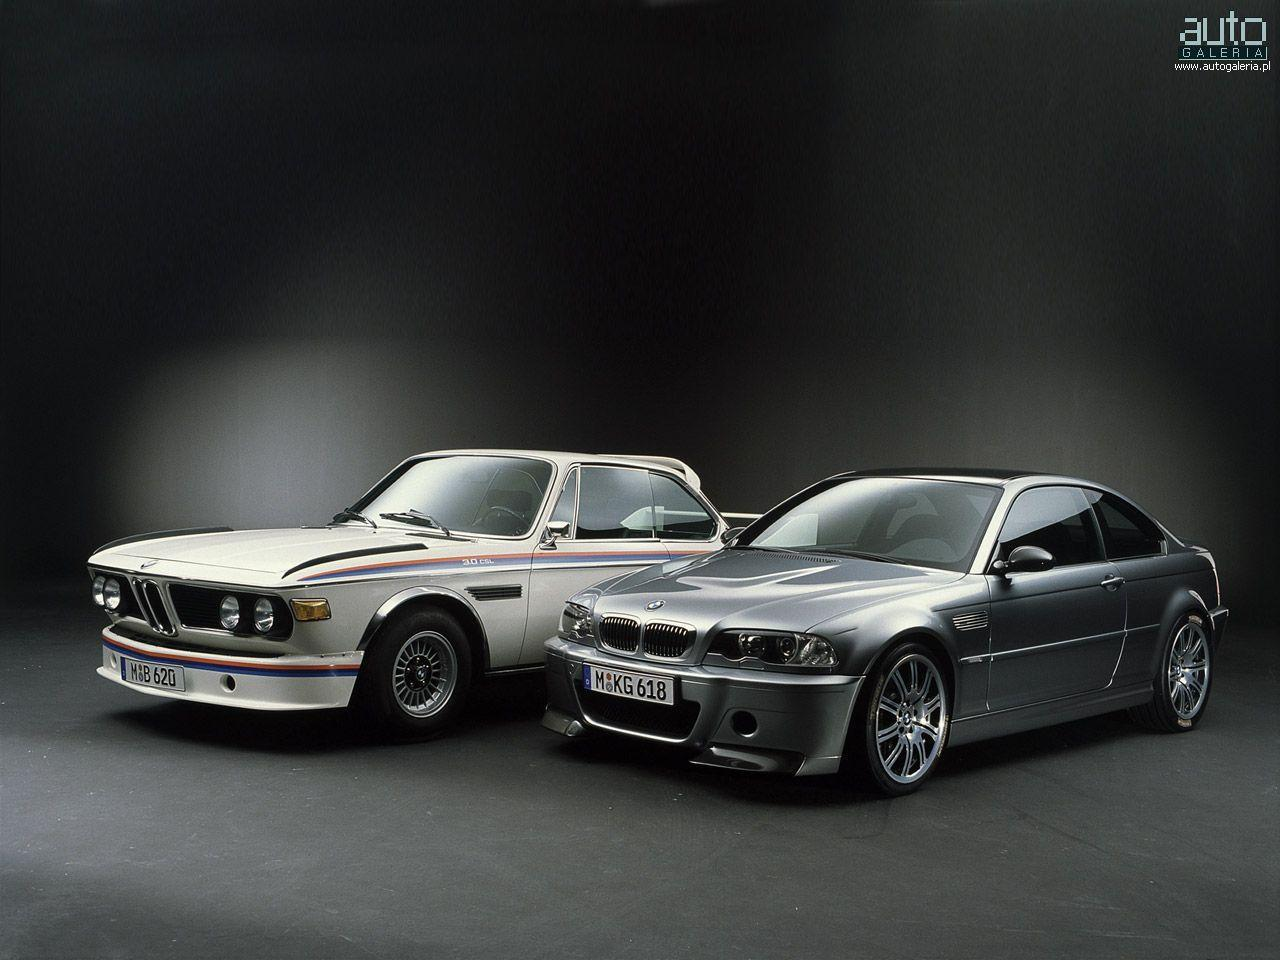 E46 M3 CSL Photo Tribute Thread